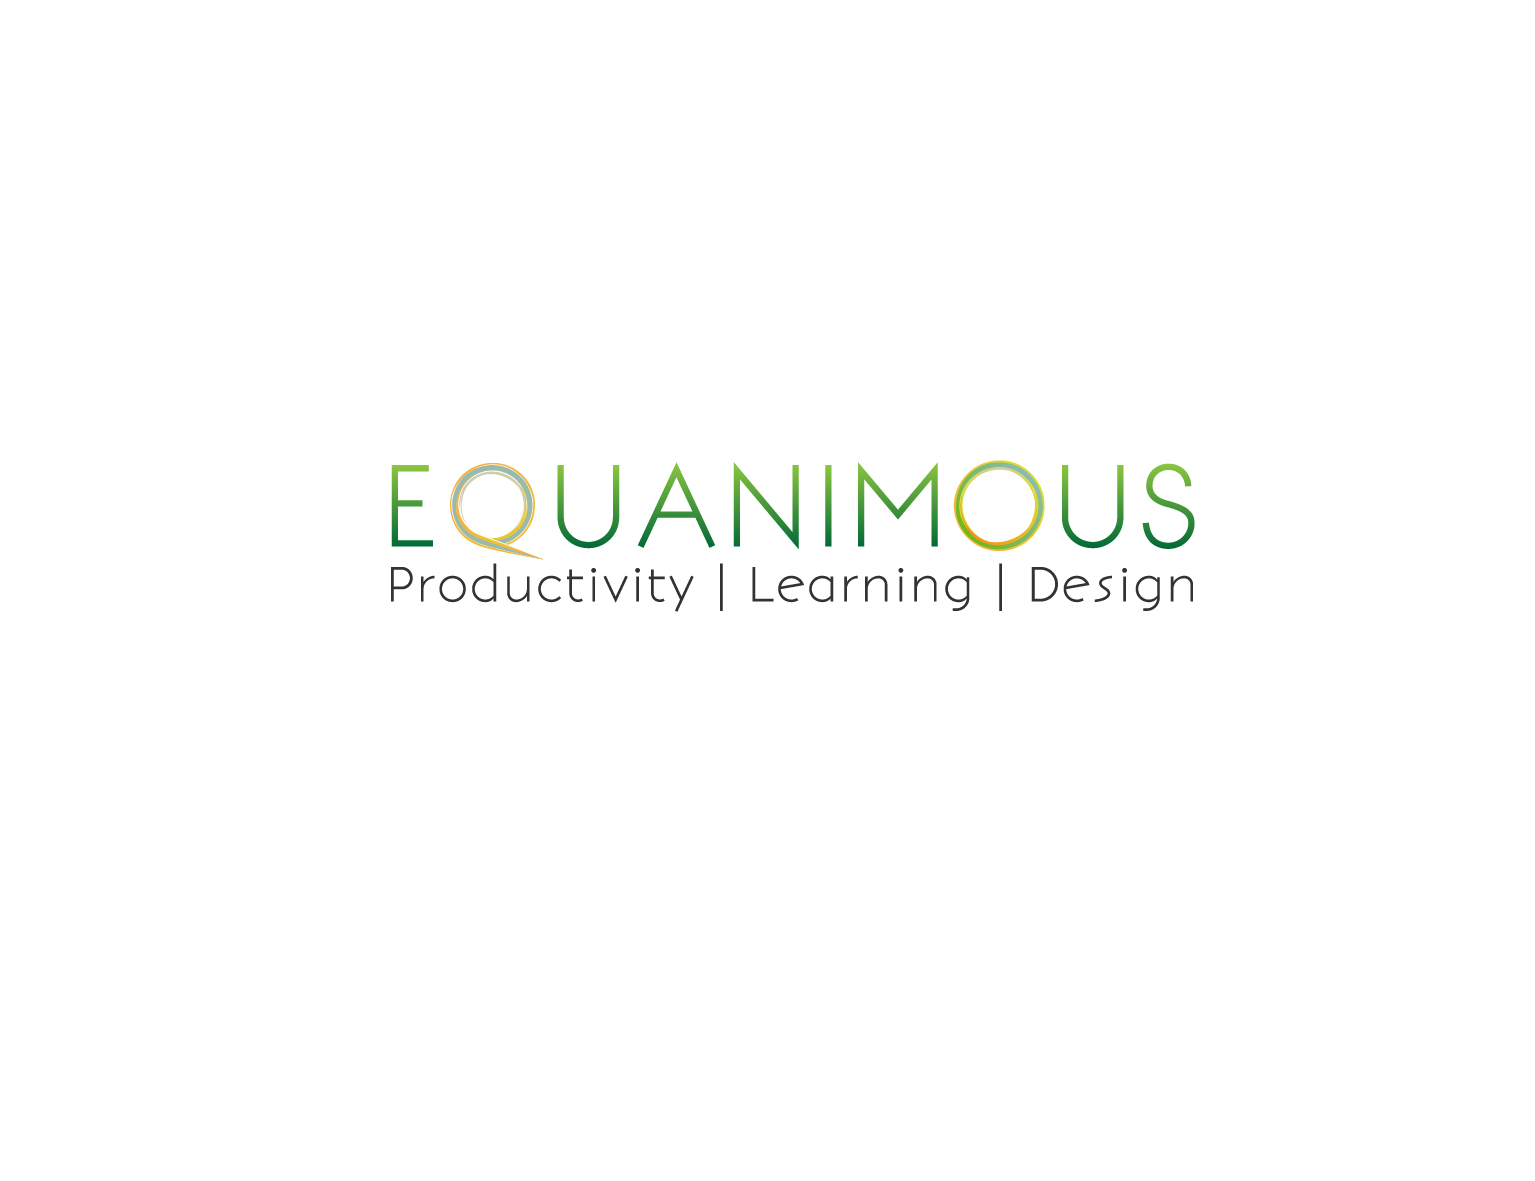 Logo Design by 3draw - Entry No. 353 in the Logo Design Contest Logo Design : EQUANIMOUS : Productivity | Learning | Design.